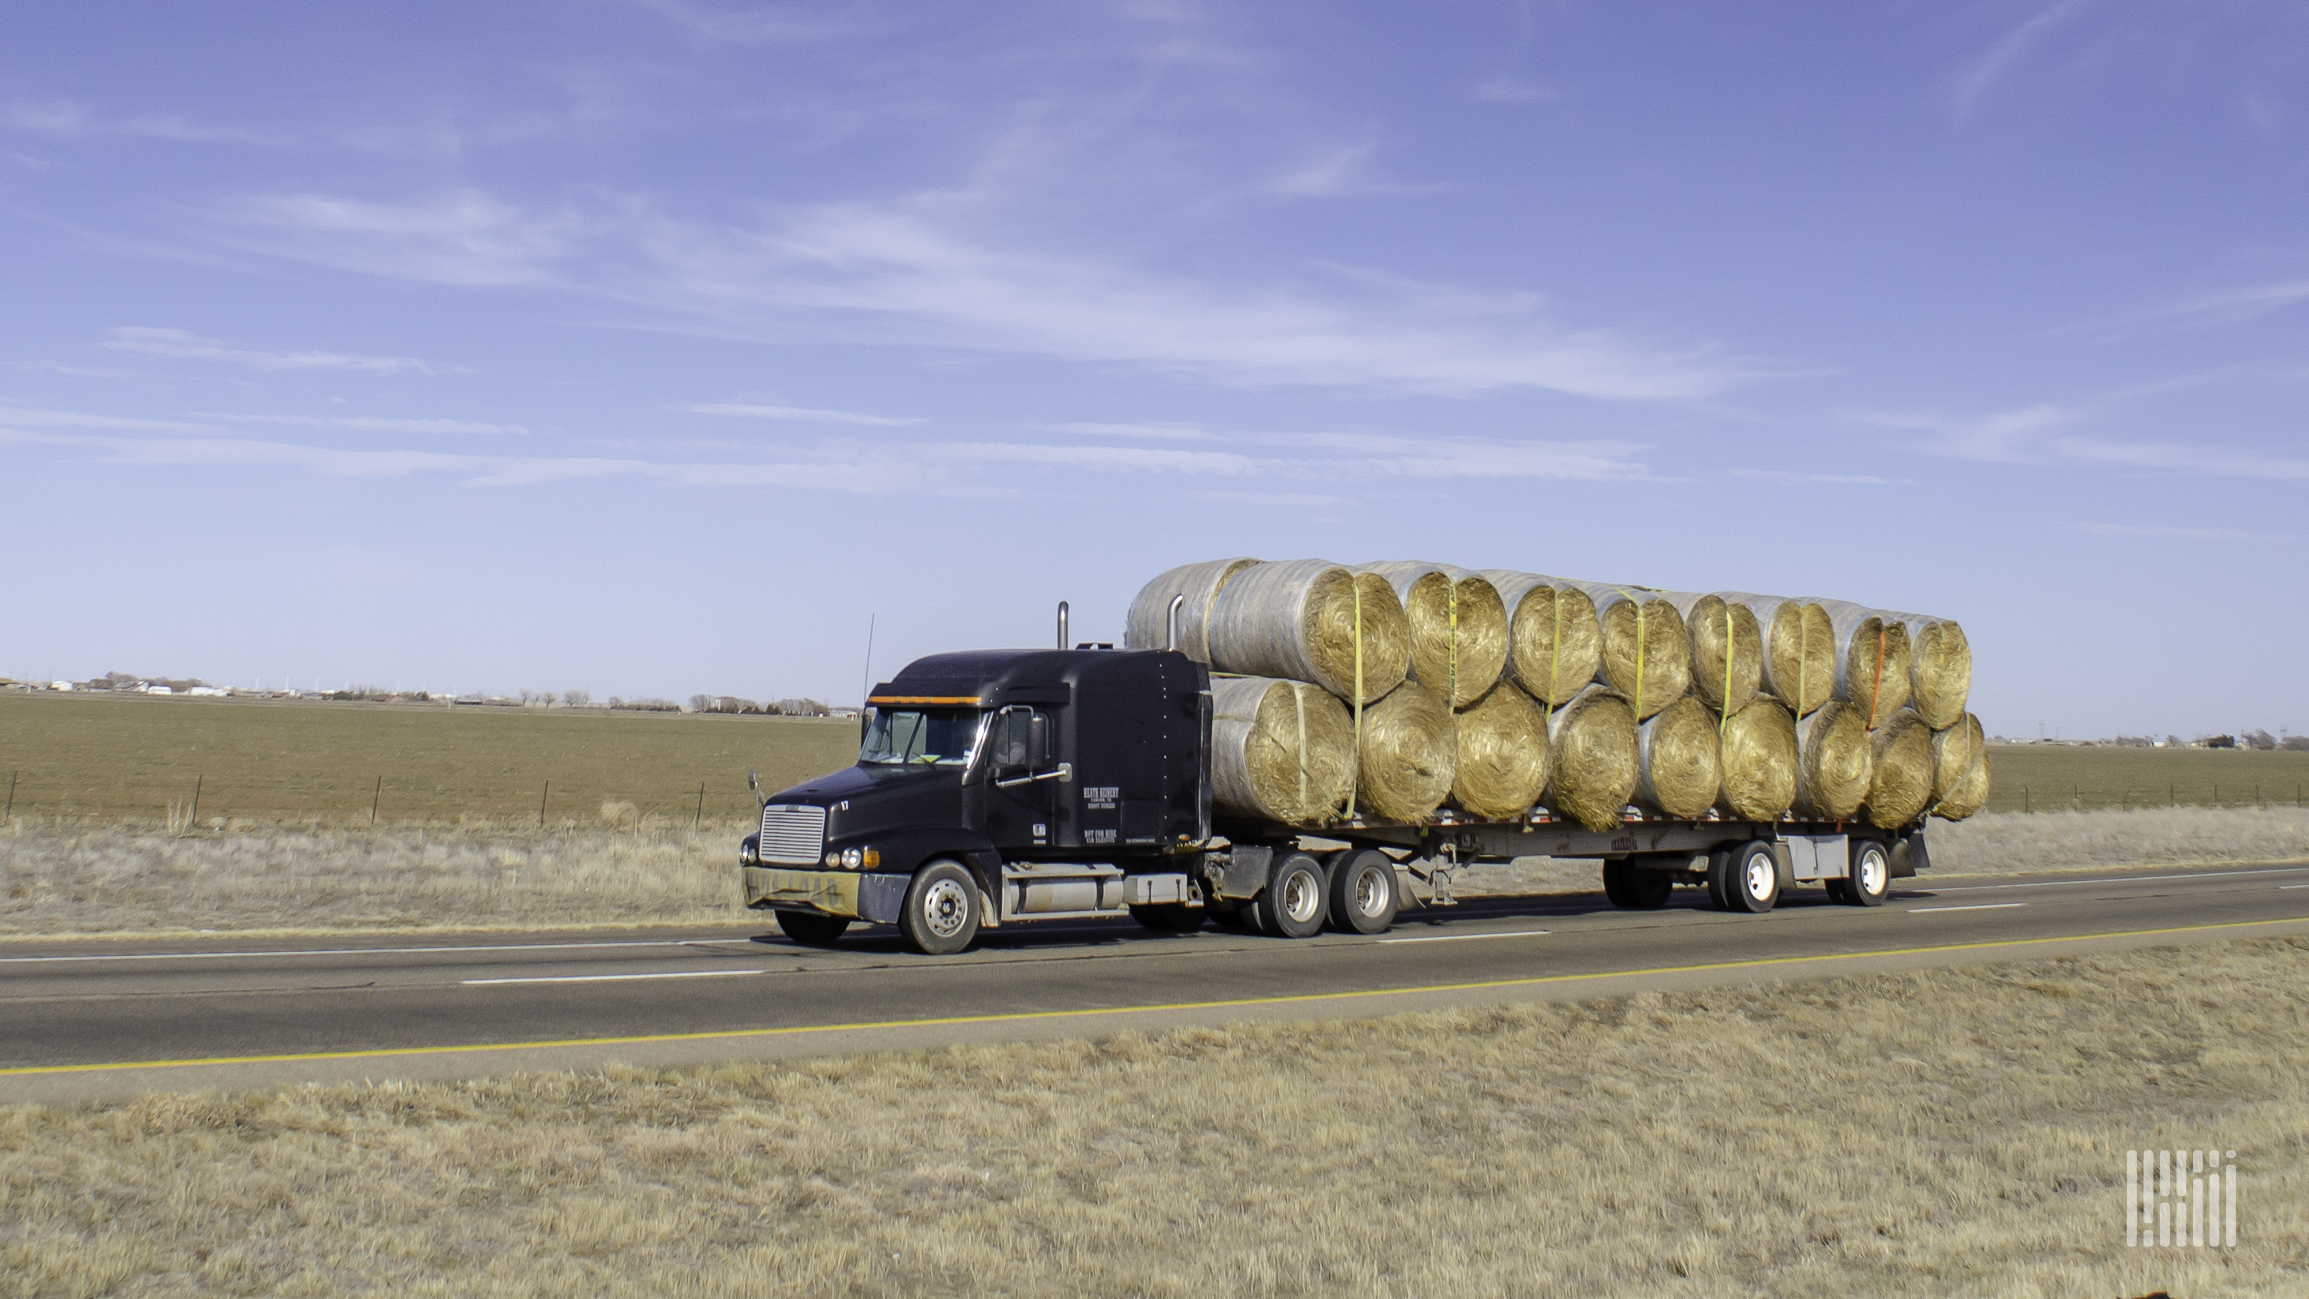 Flatbed truck carrying large bales of hay.